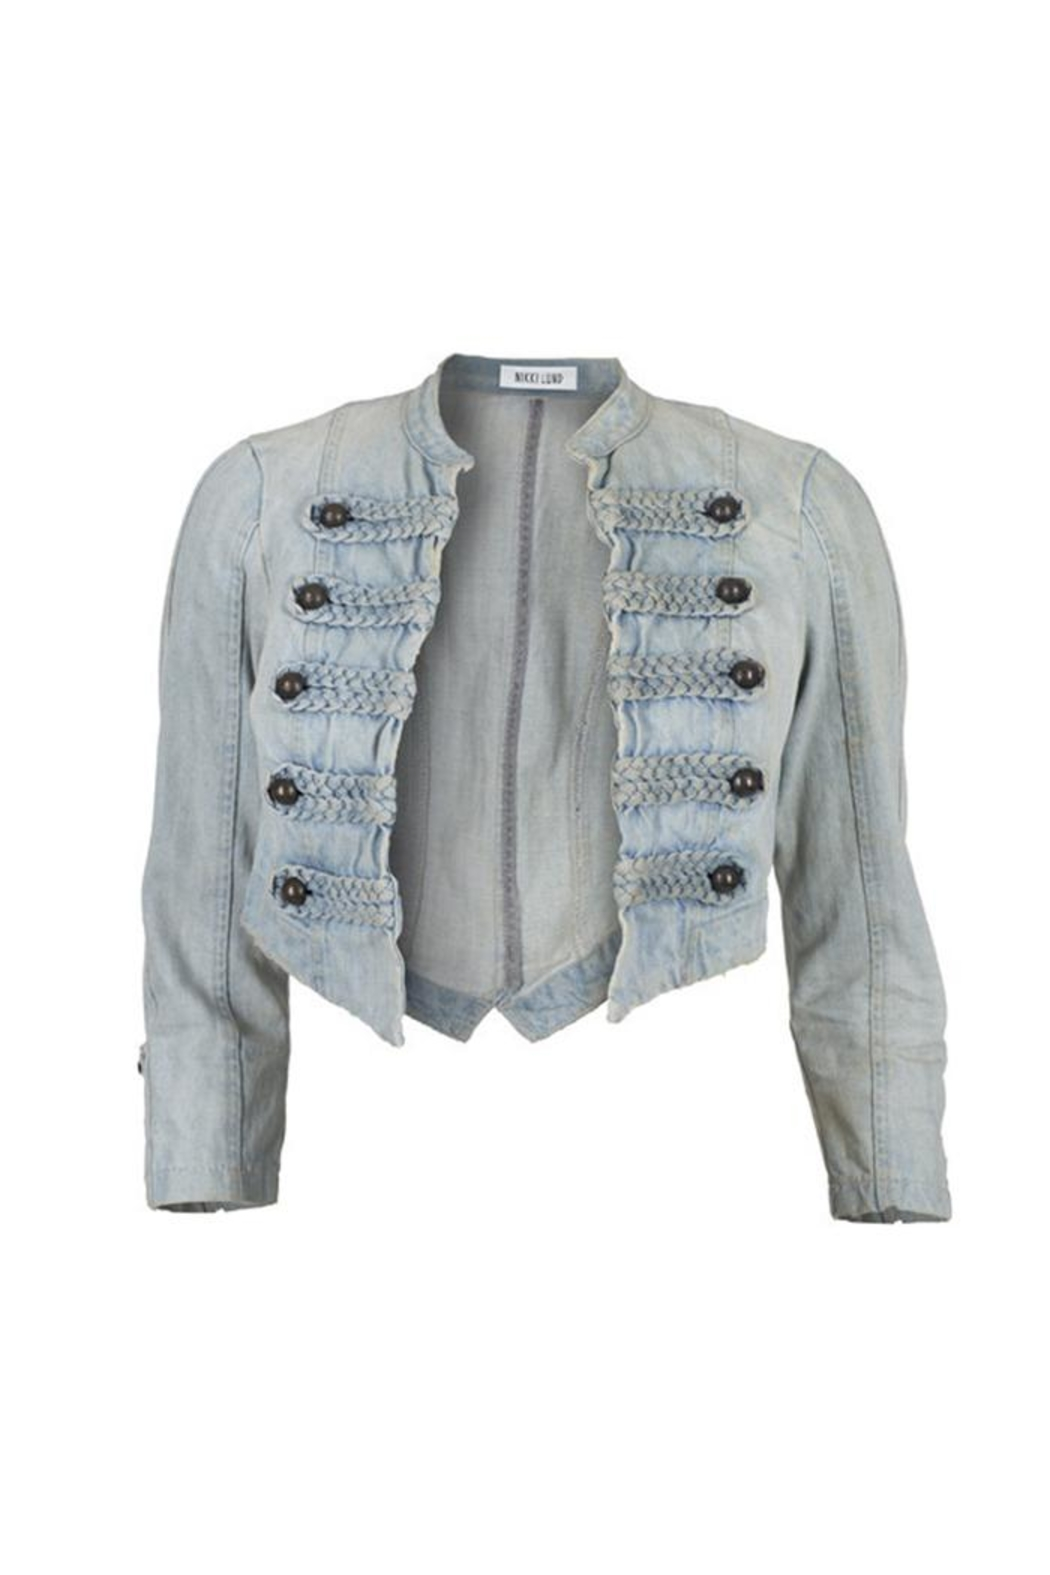 NIKKI LUND System Denim Jacket - Main Image